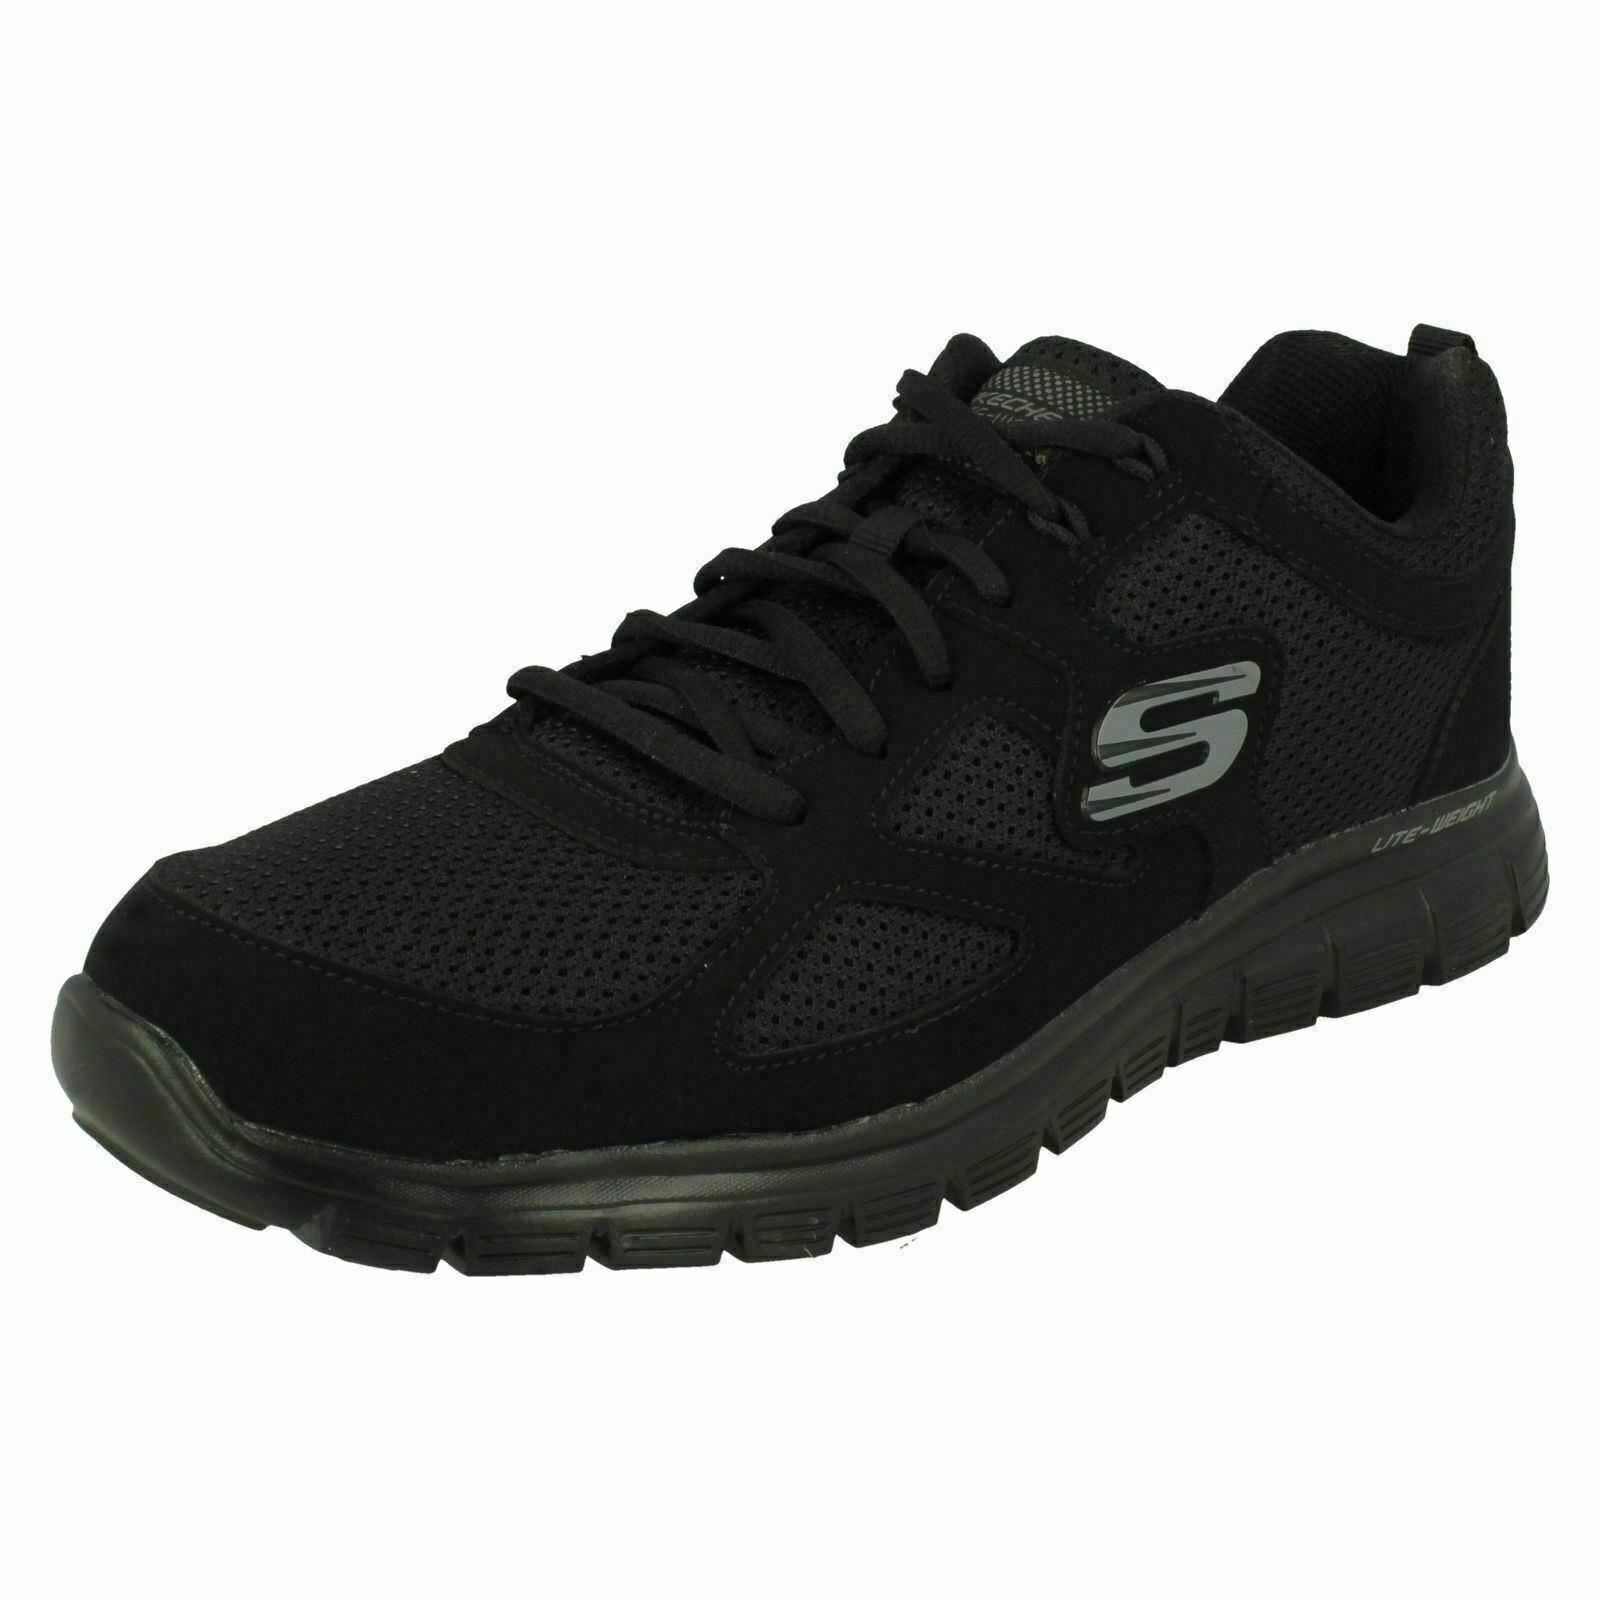 Mens Skechers Burns - Agoura 52635 Lace Up Sports Trainers